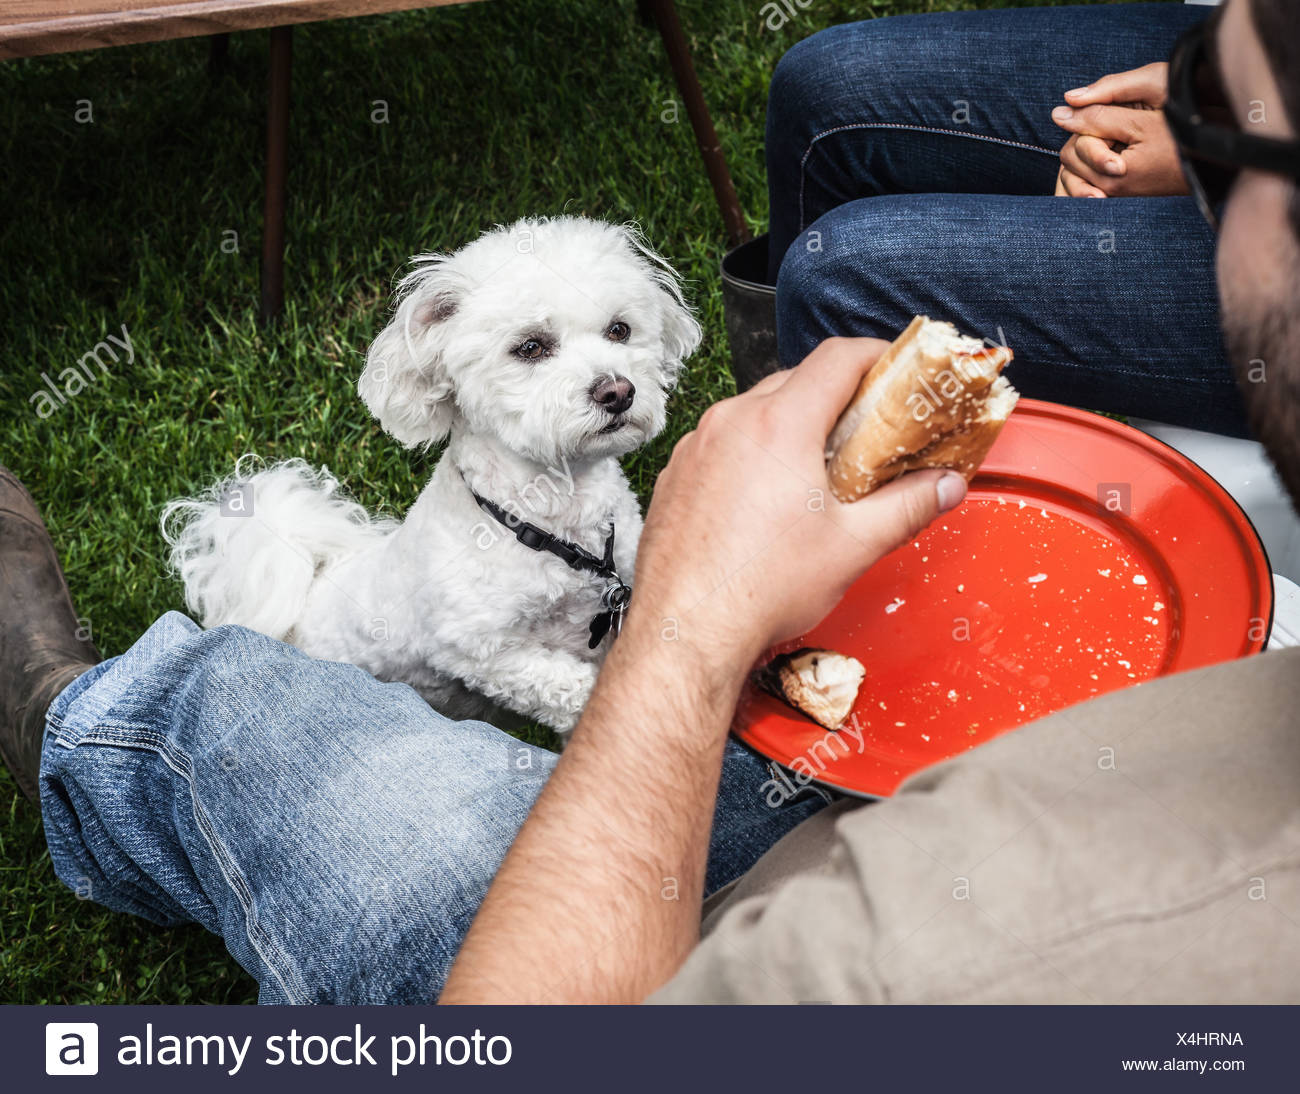 Dog begging for owners food - Stock Image